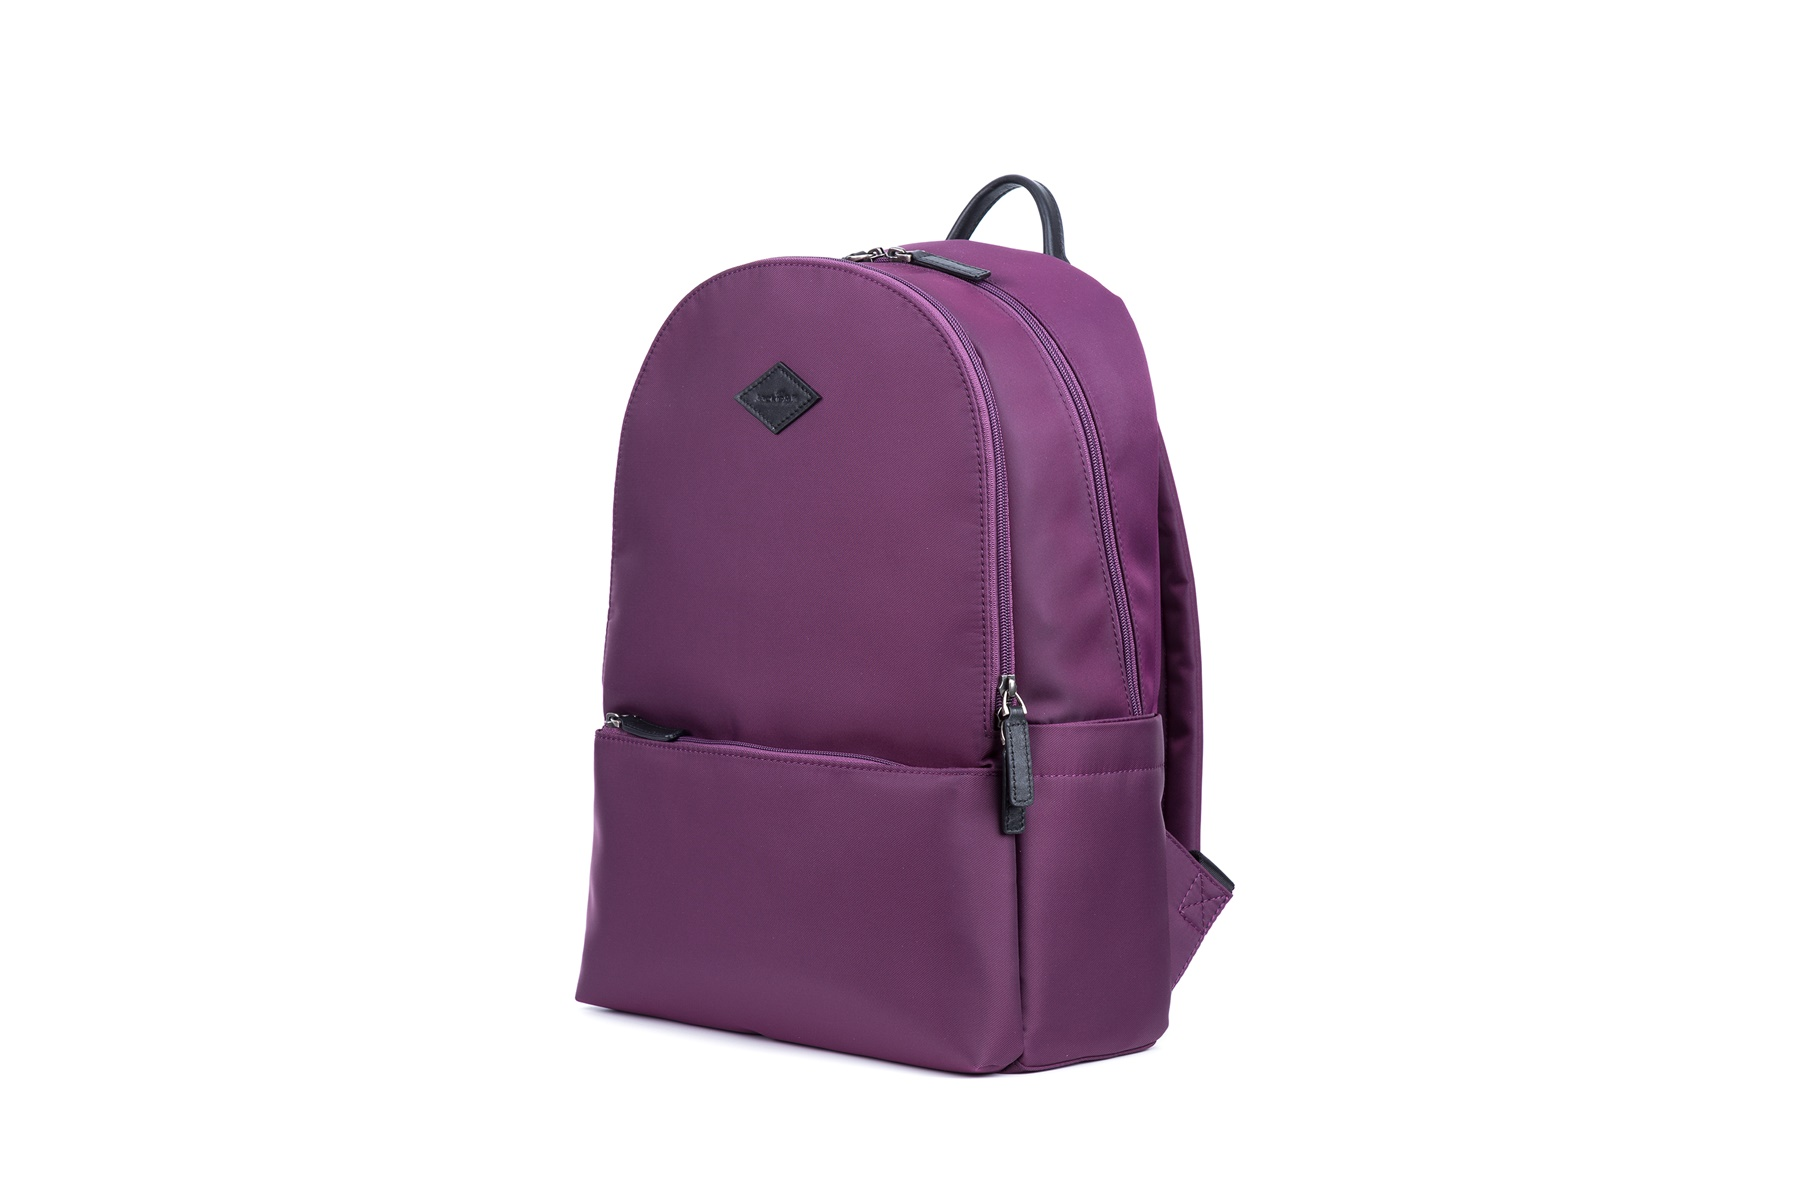 GF bags-Professional Stylish Backpacks Big Backpack Bags Manufacture-3